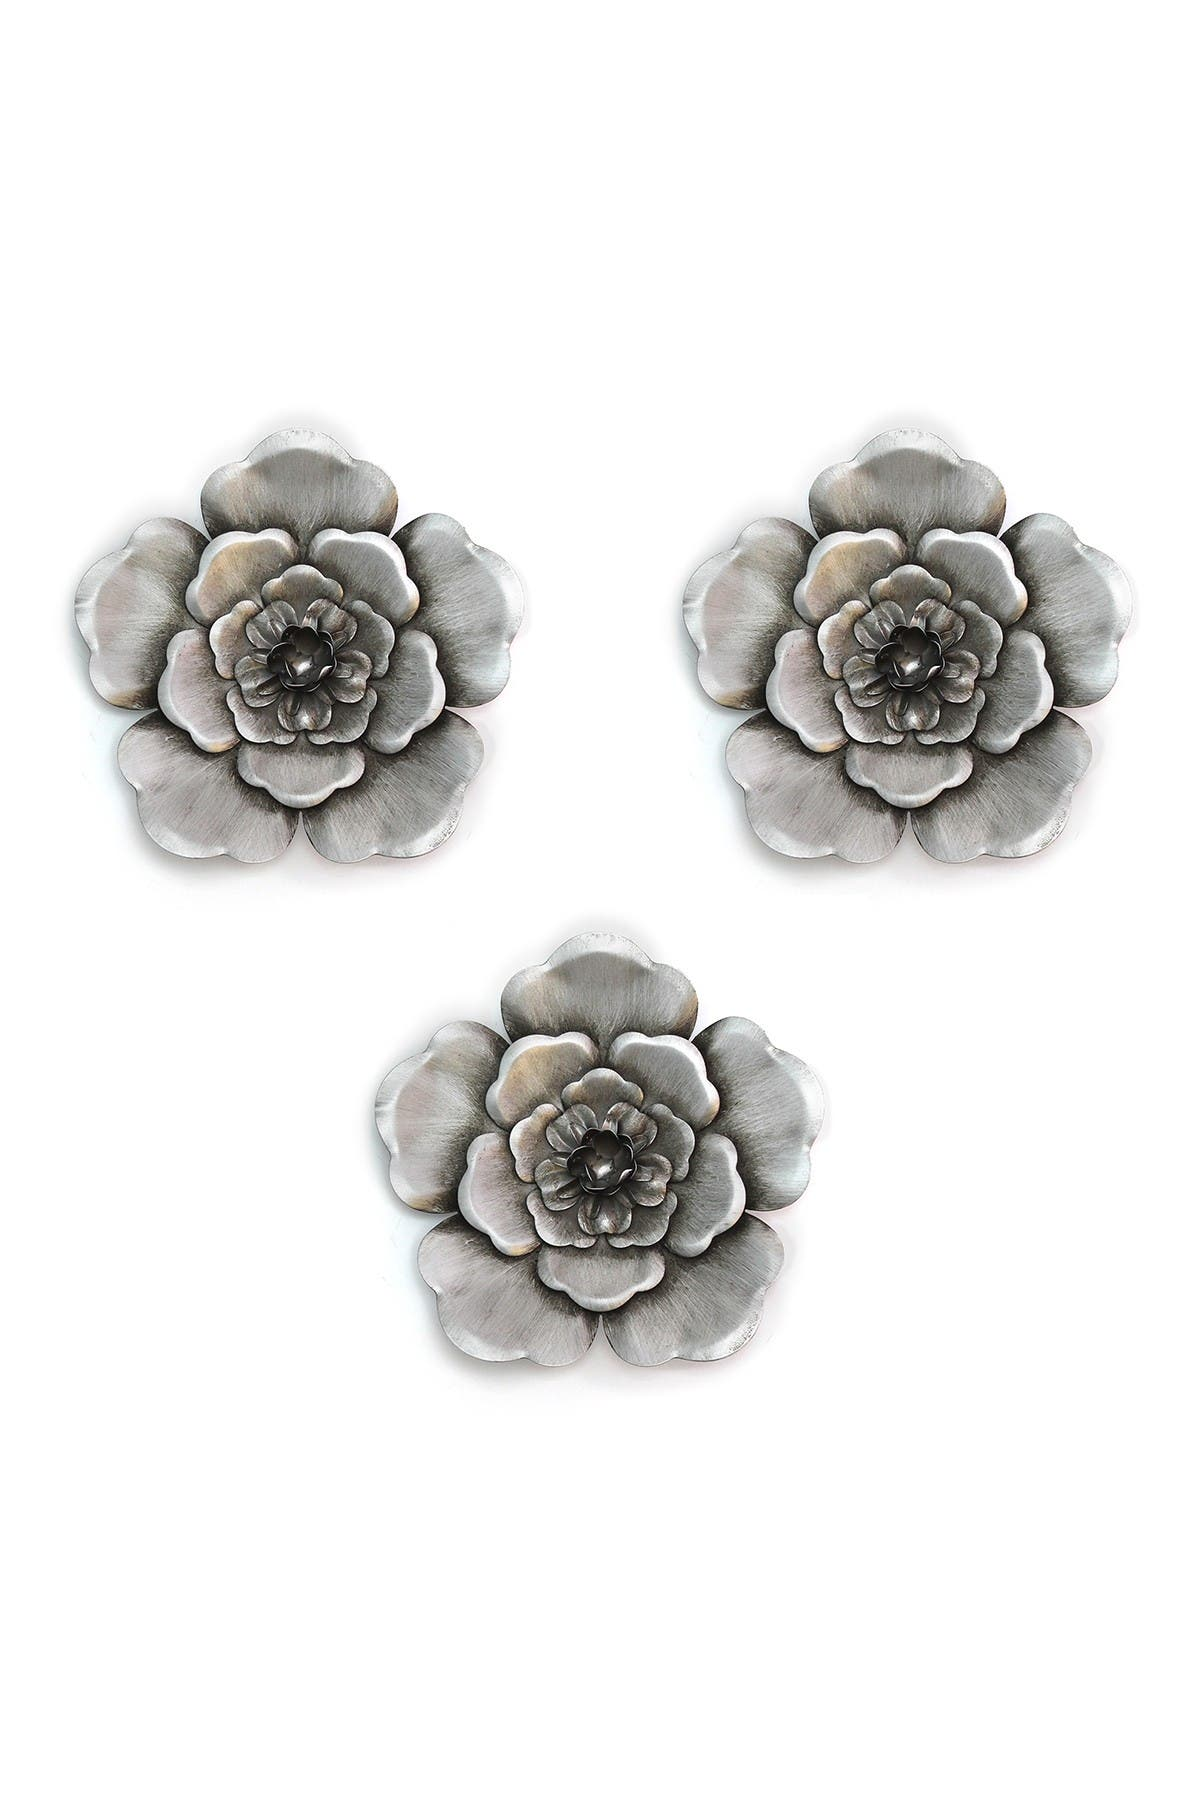 Image of Stratton Home Silver Metal Wall Flowers - Set of 3